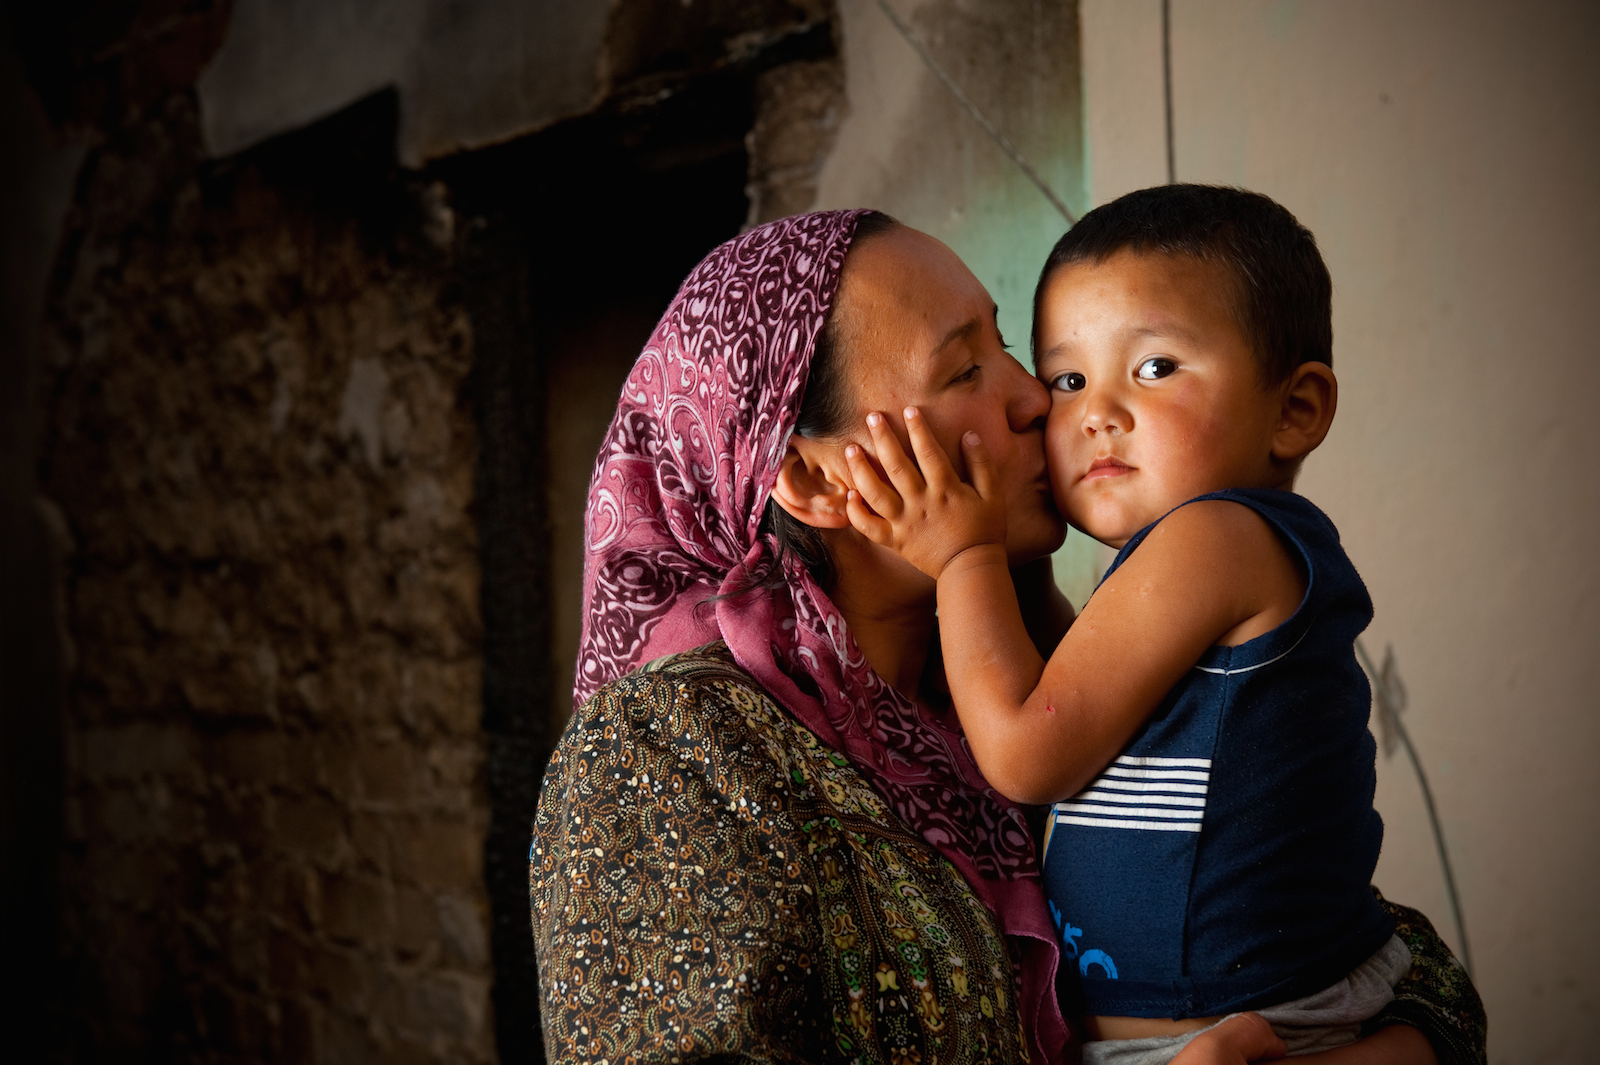 Zulhumar Amanbaev kisses her three-year-old son, Abdulmutalib, in Kyrgyzstan